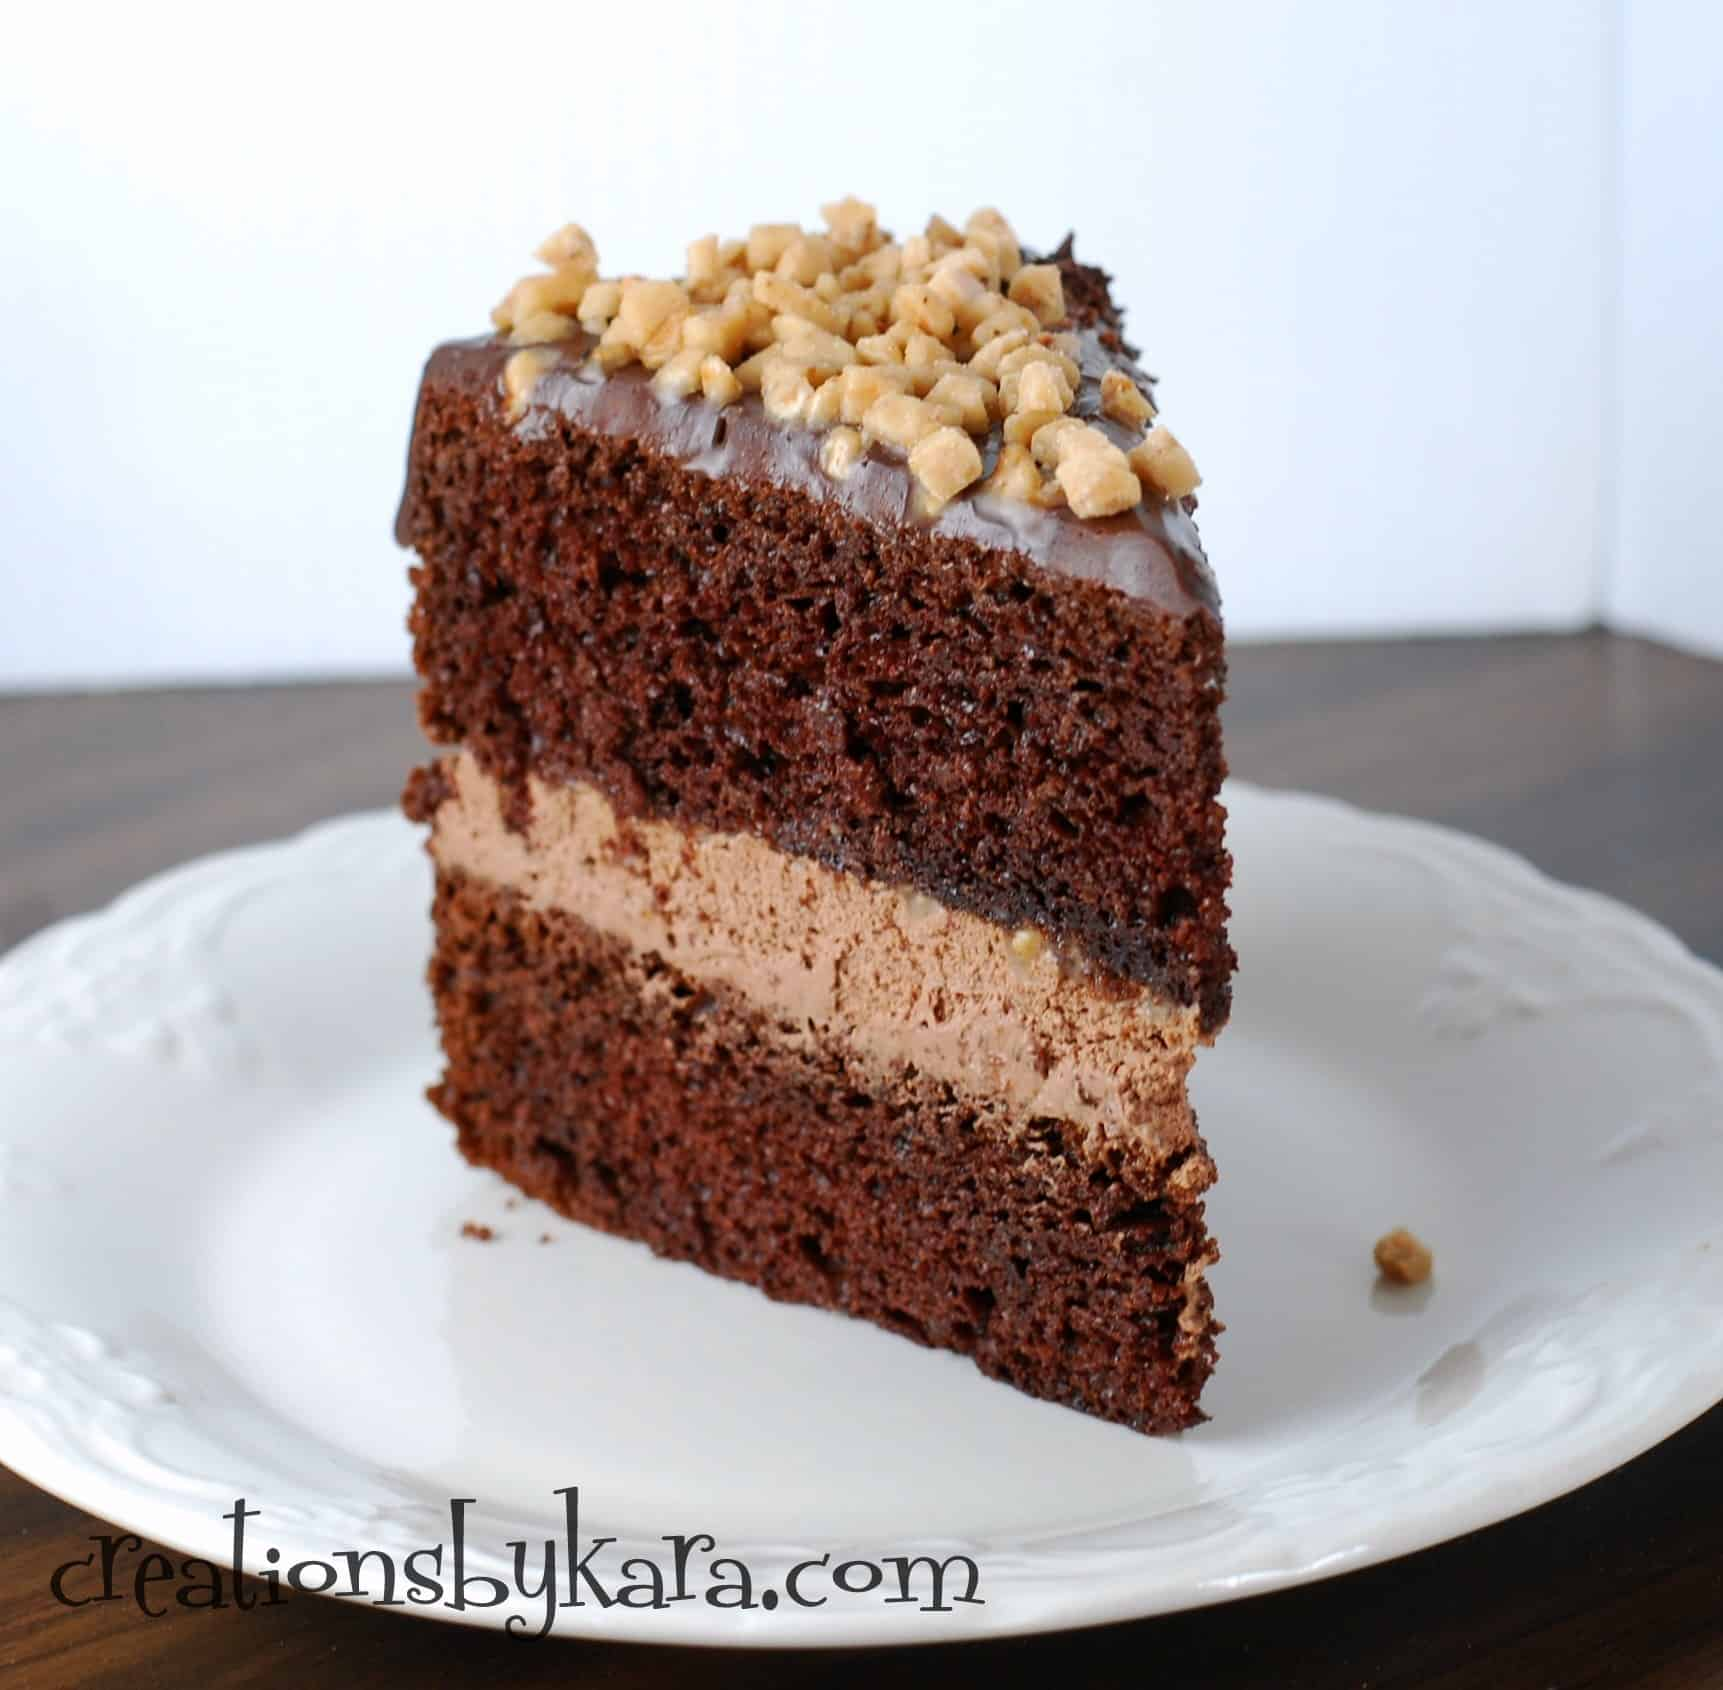 Cake With Chocolate Mousse : Images Chocolate Mousse Cake 2015 - House Style Pictures